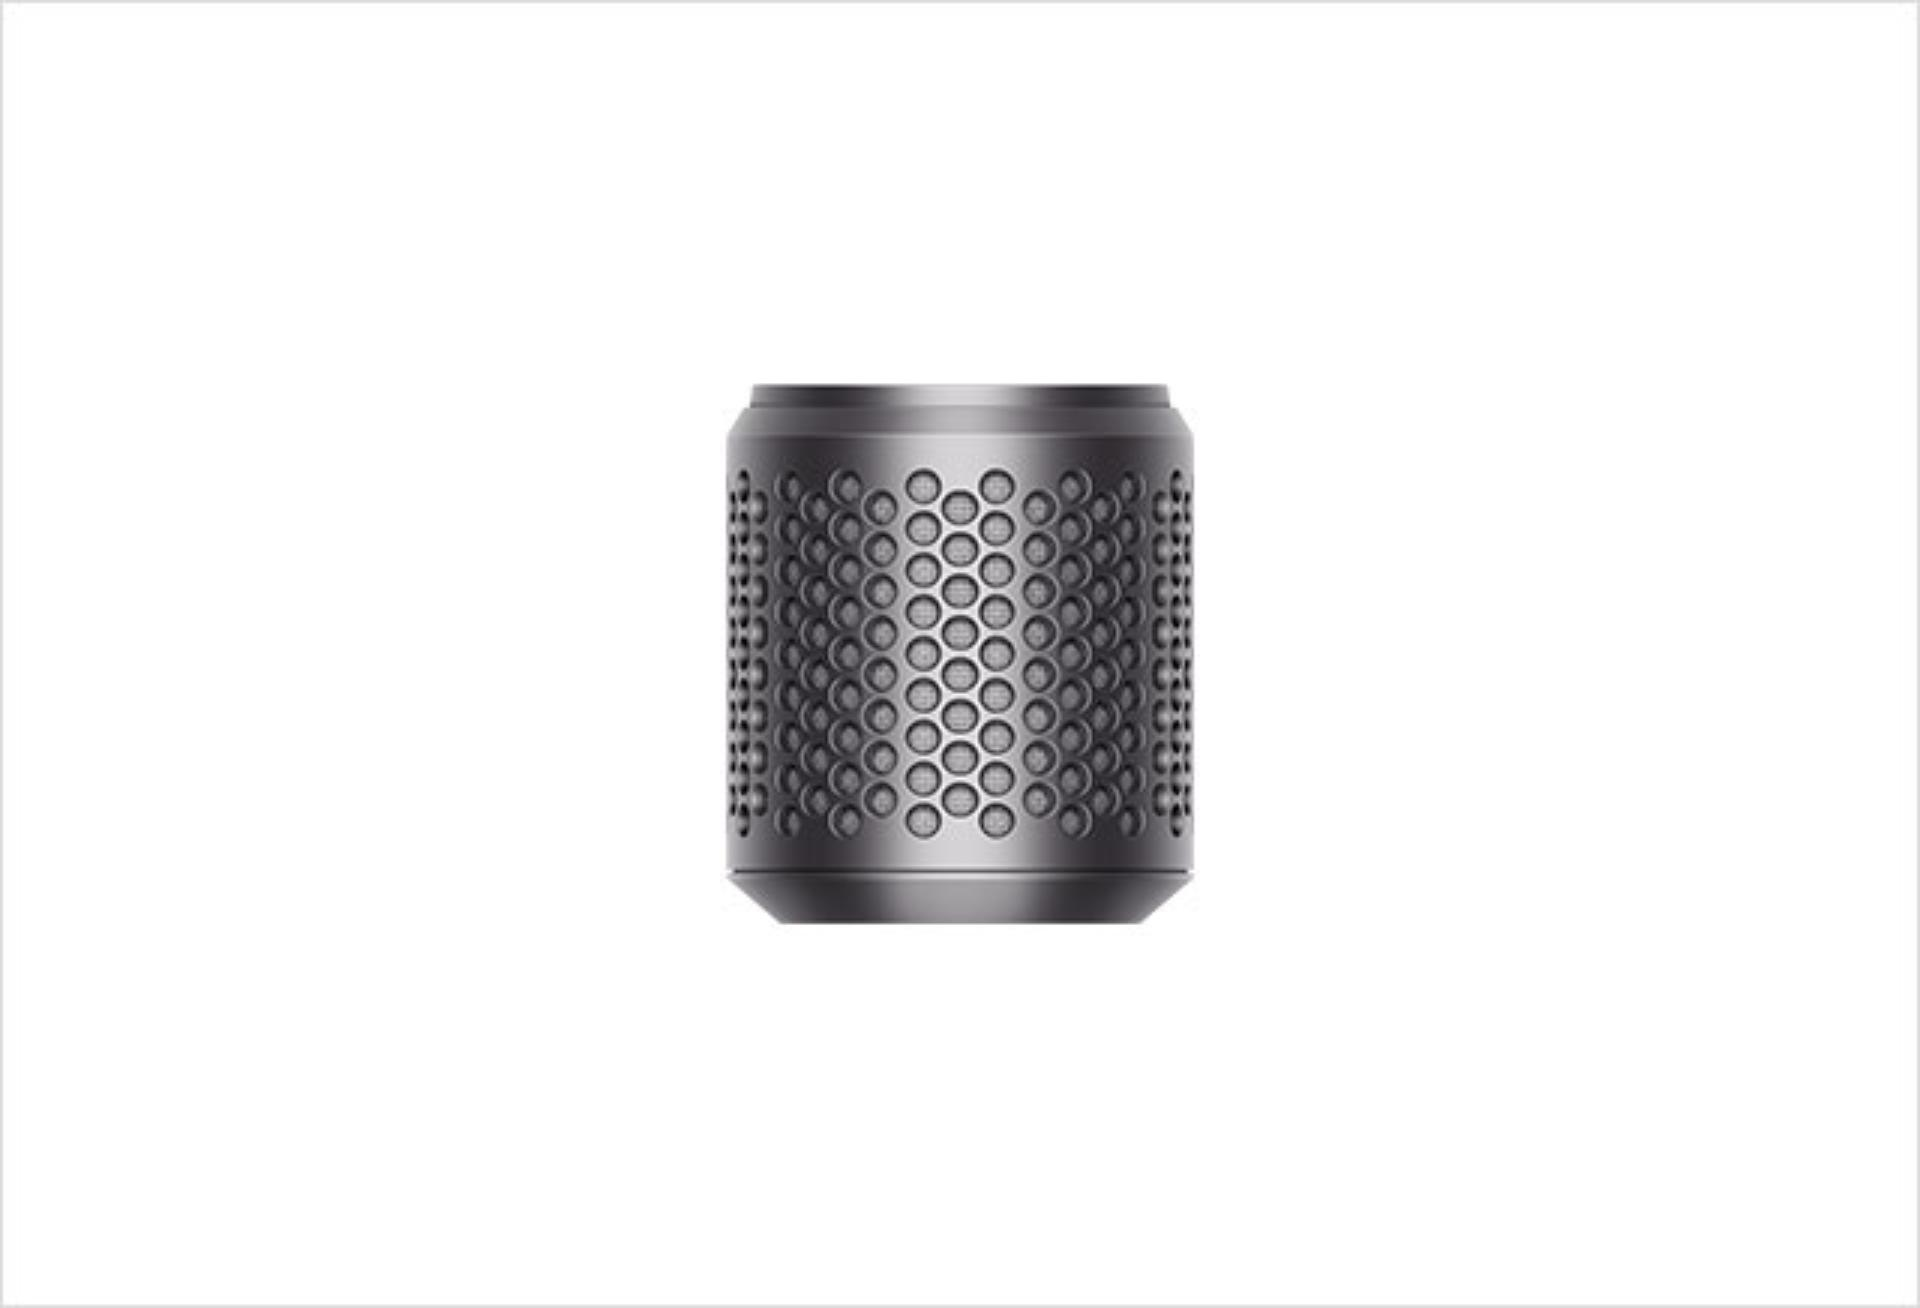 Spare filter cage